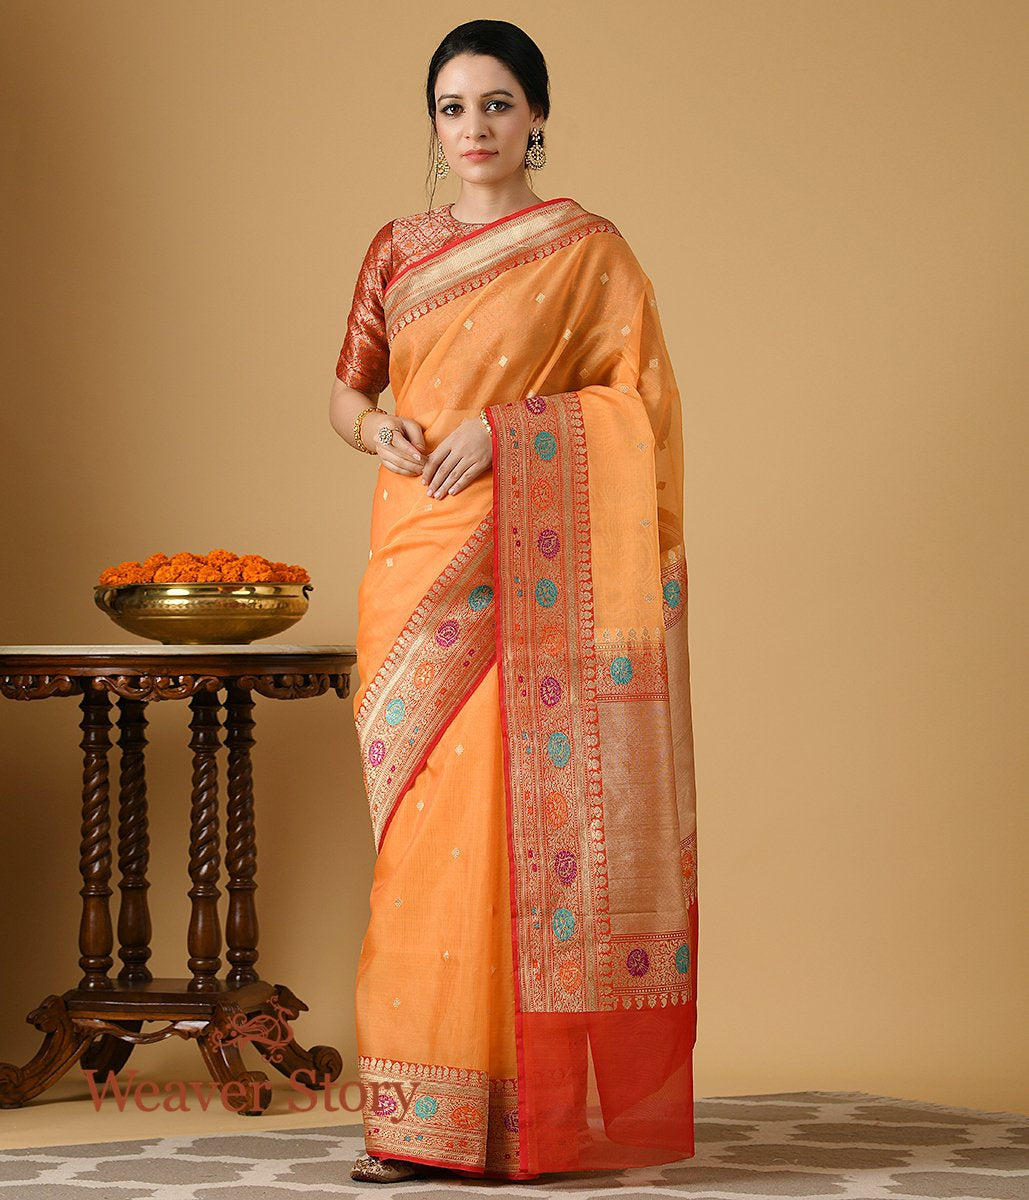 Handwoven Orange and Red Meenakari Border Organza Saree